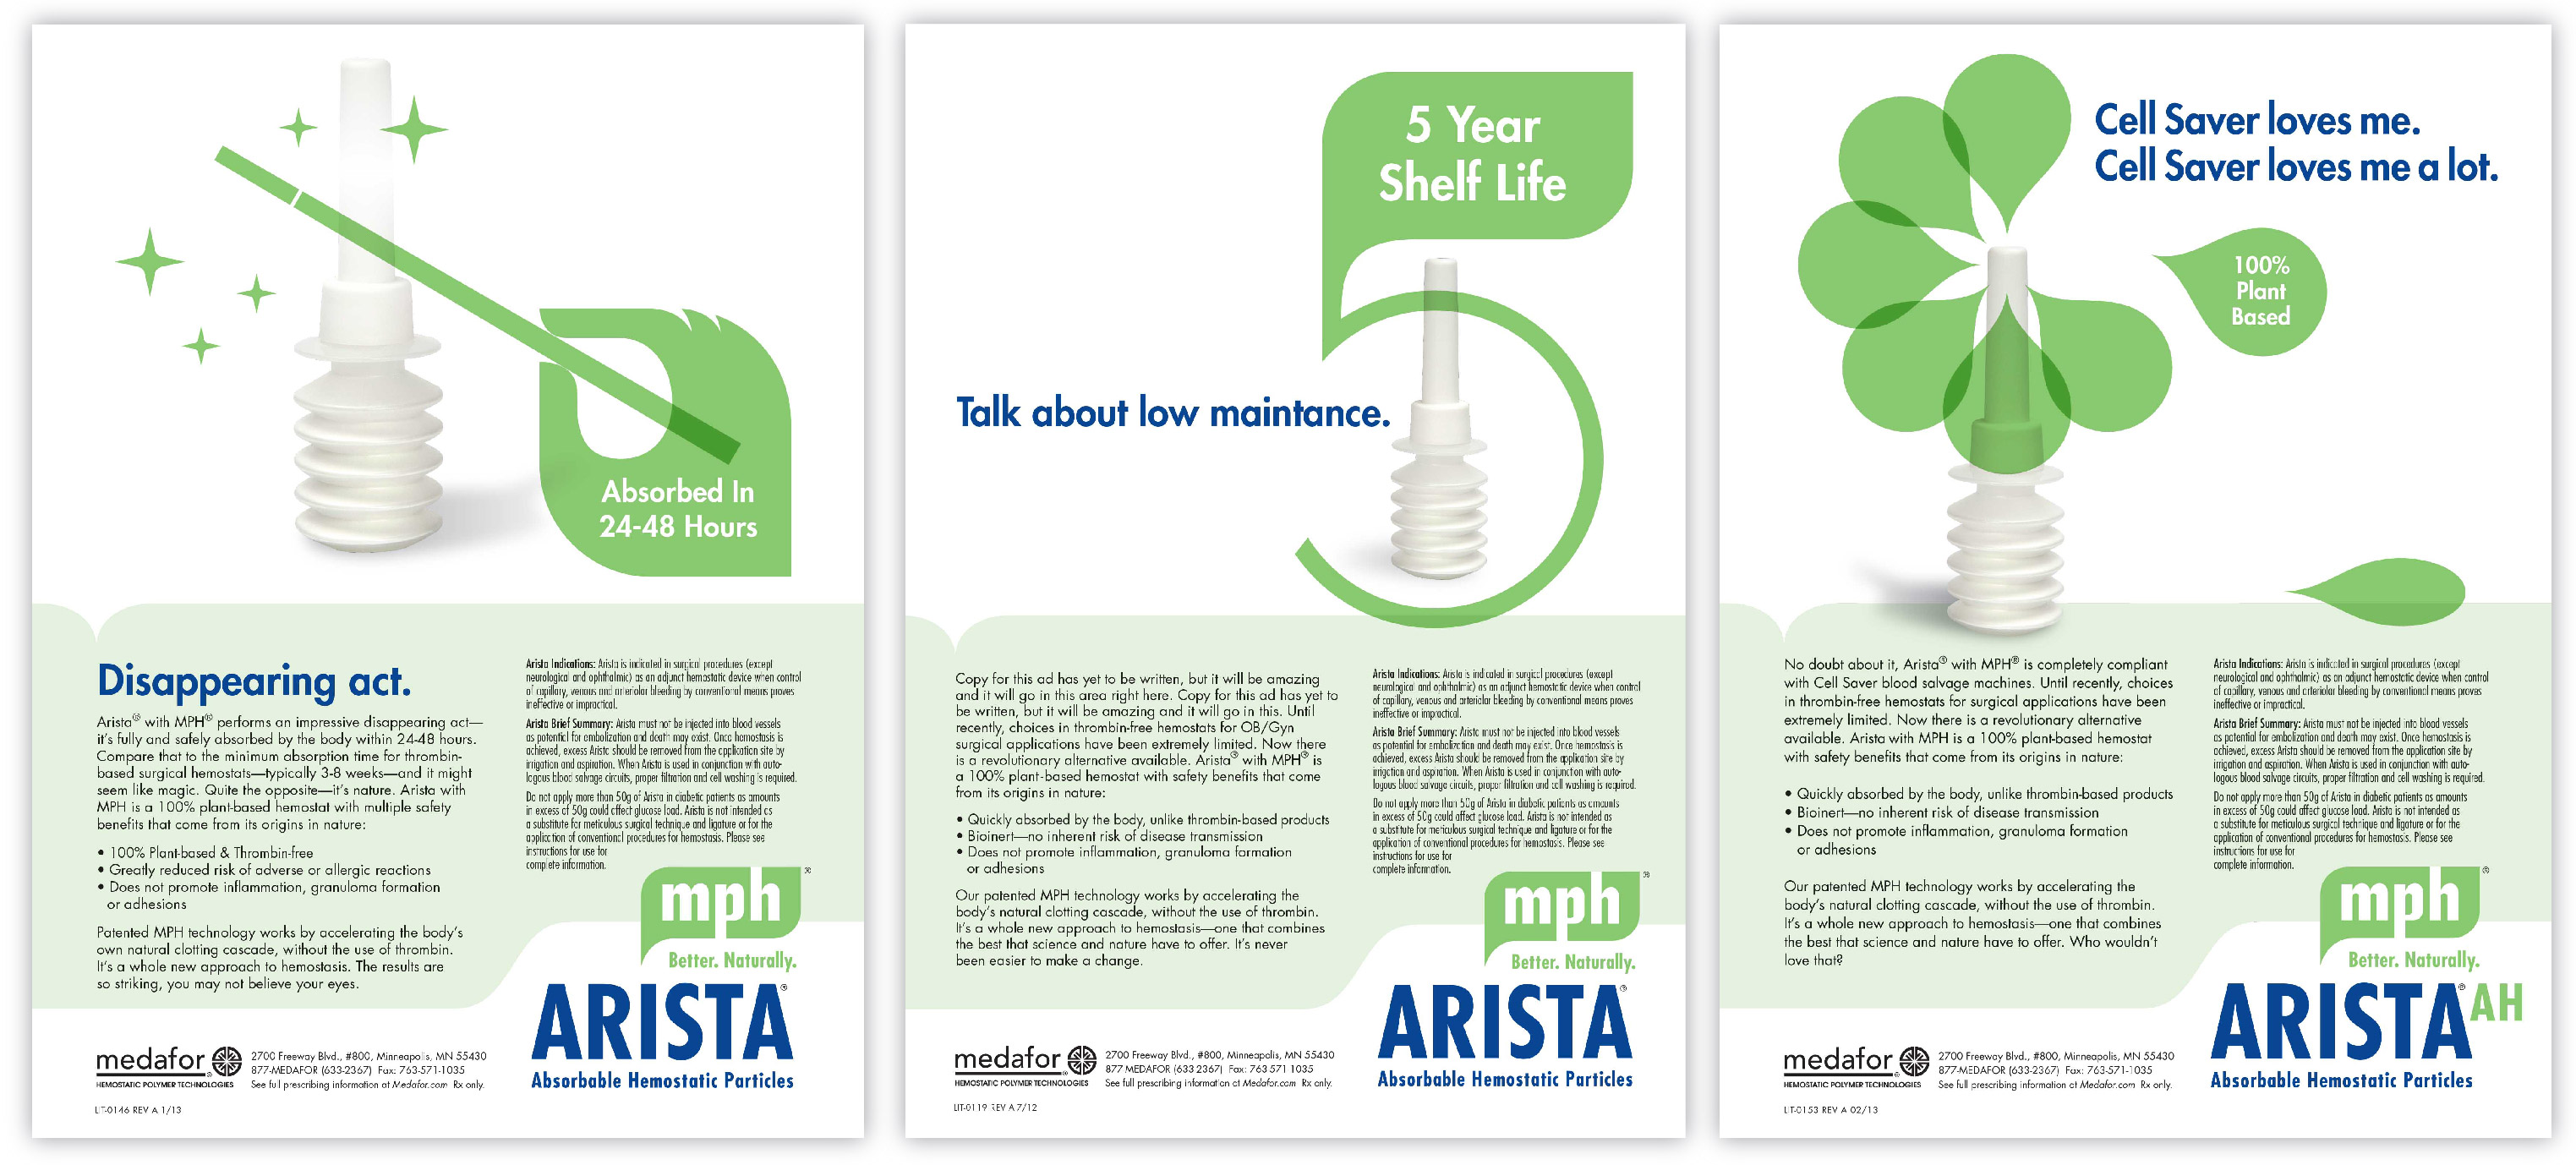 arista branding and ad campaign smarter trade journal advertising was developed to speak to specific segments communicate relevant benefits and reinforce brand identity